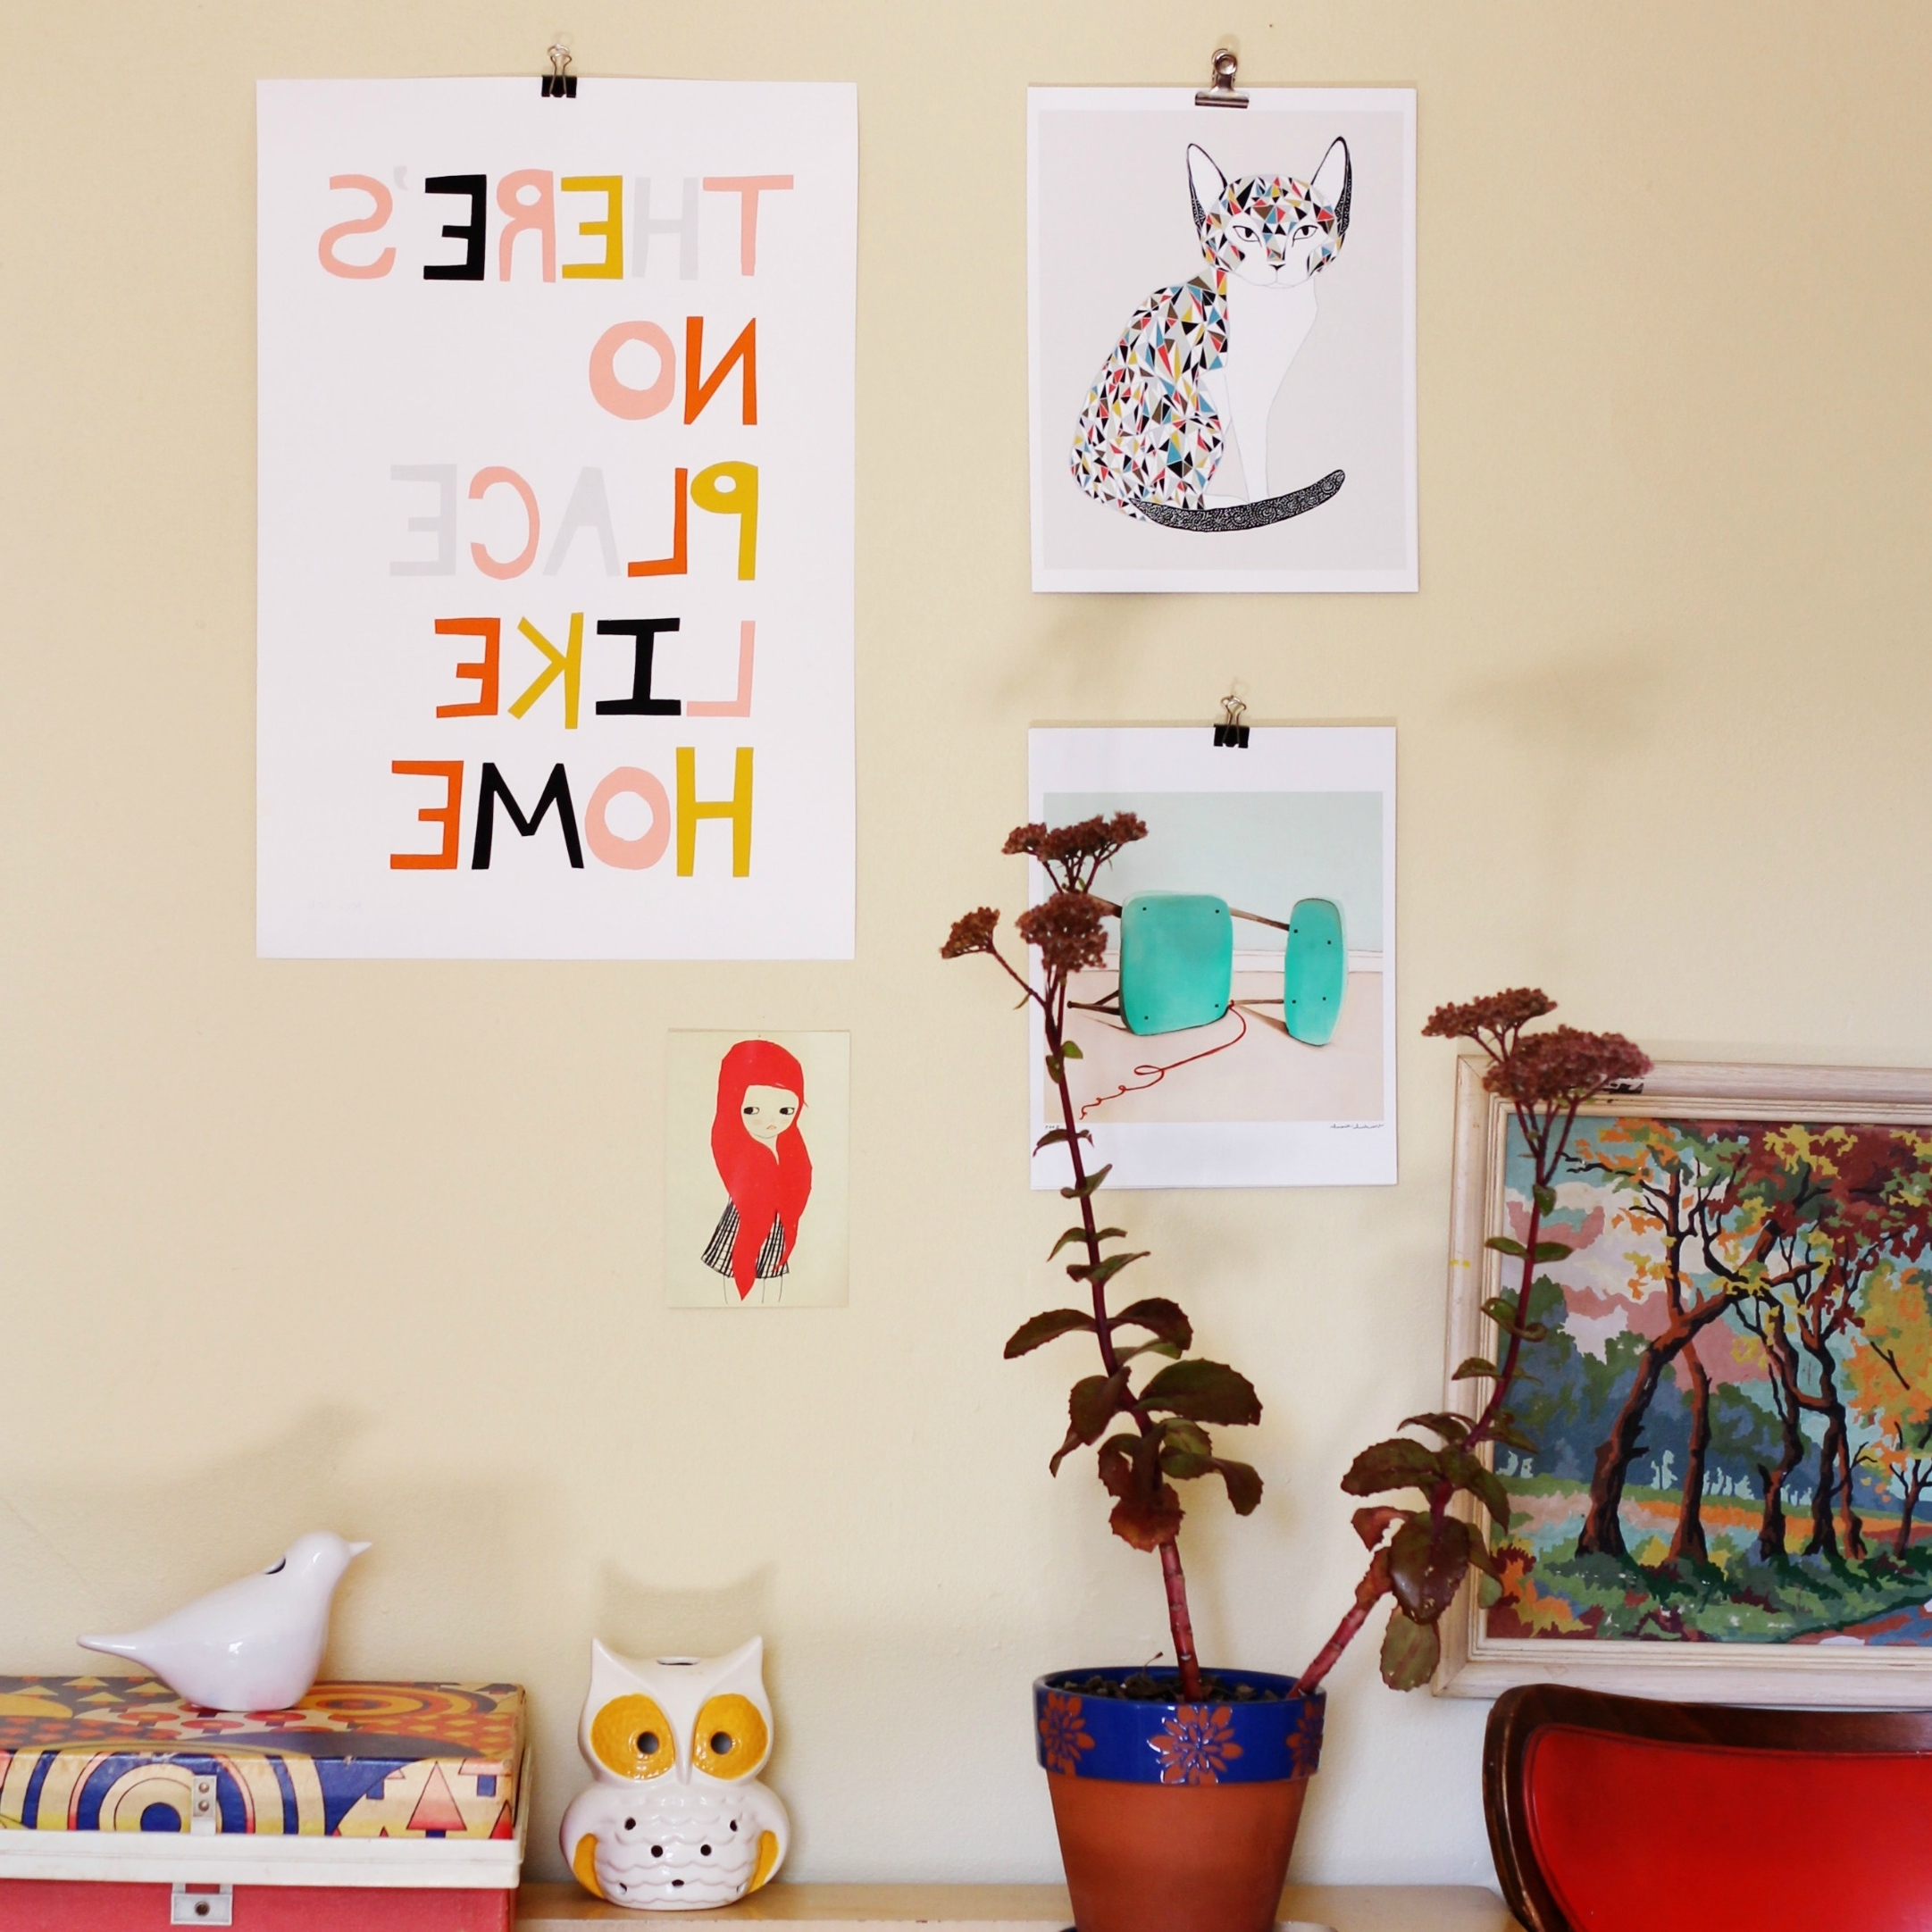 Most Recent Hang Your Art Prints With Binder Clips #diy Those Sticky Command Intended For Art Prints To Hang On Your Wall (View 2 of 15)